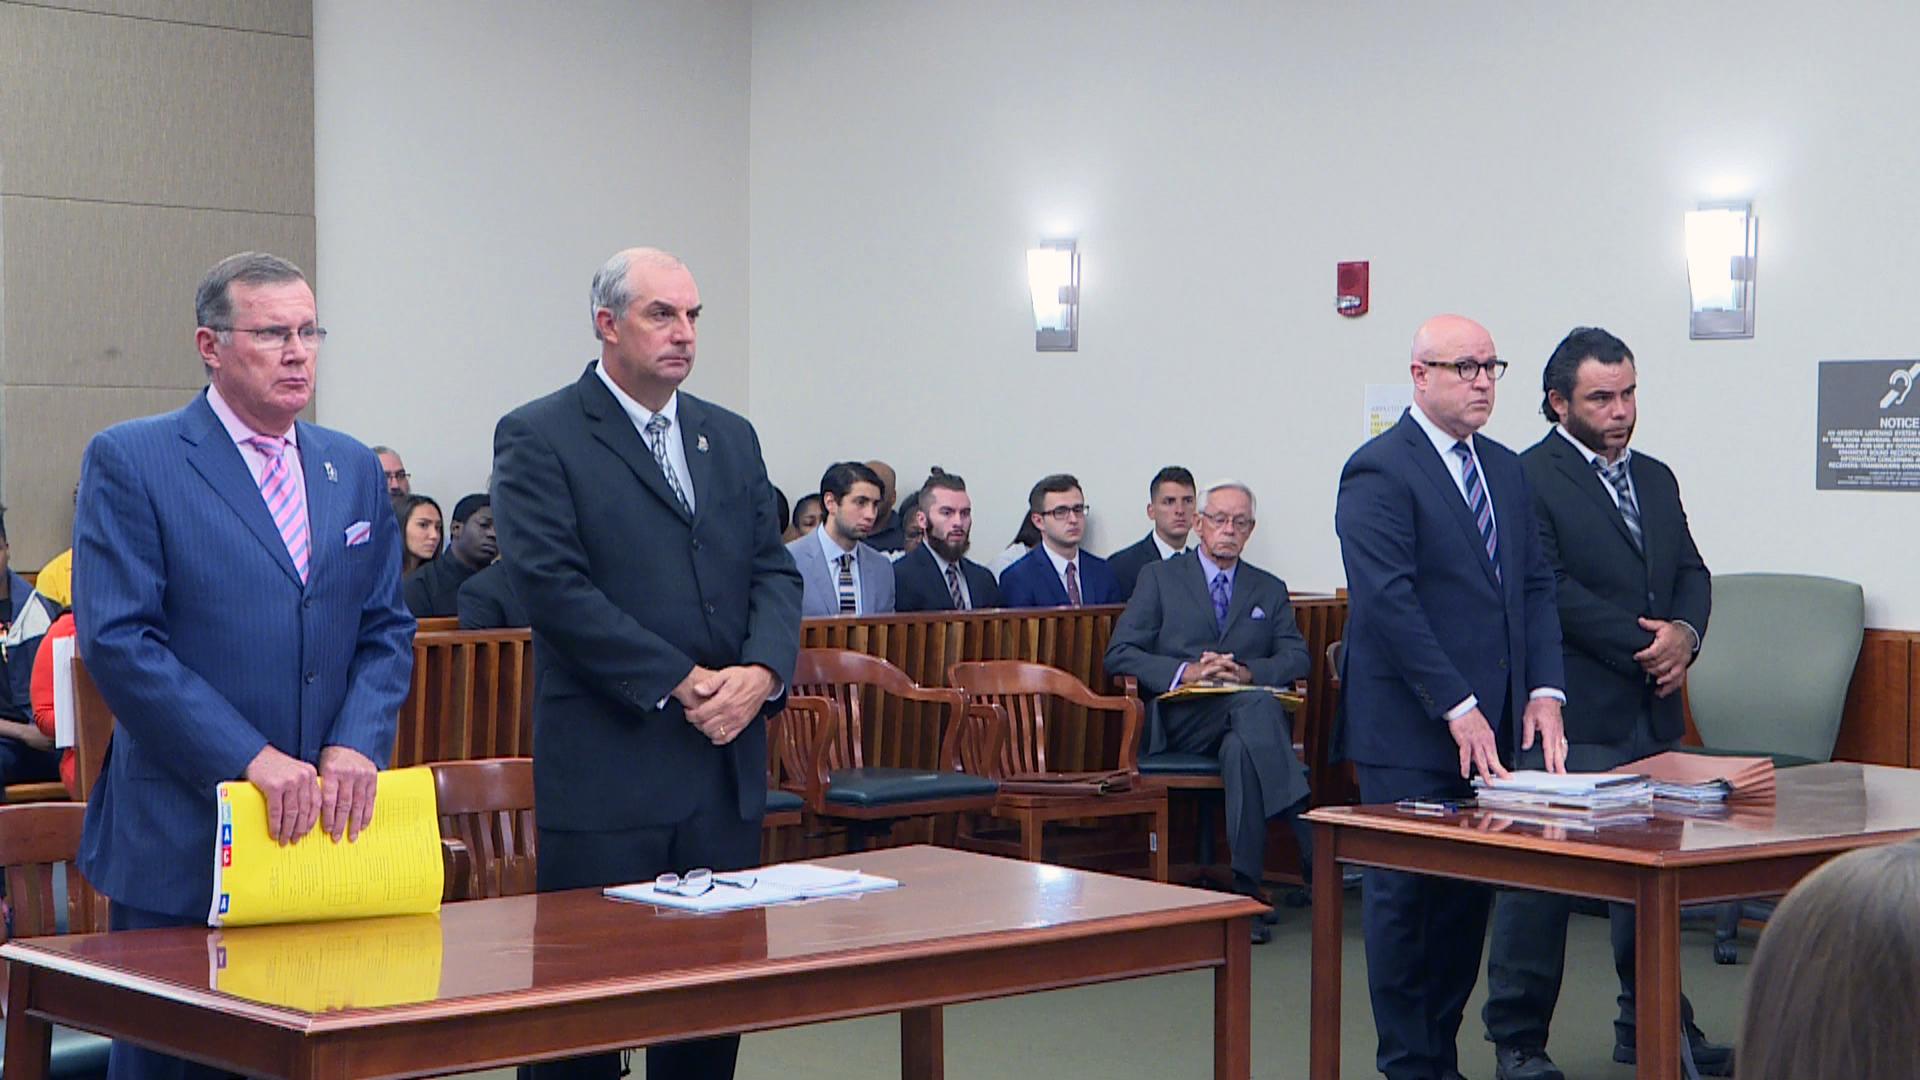 A pretrial hearing for Anthony Sacone is held in Onondaga County Court on July 10, 2018. (Reporter Kelly Curtin)